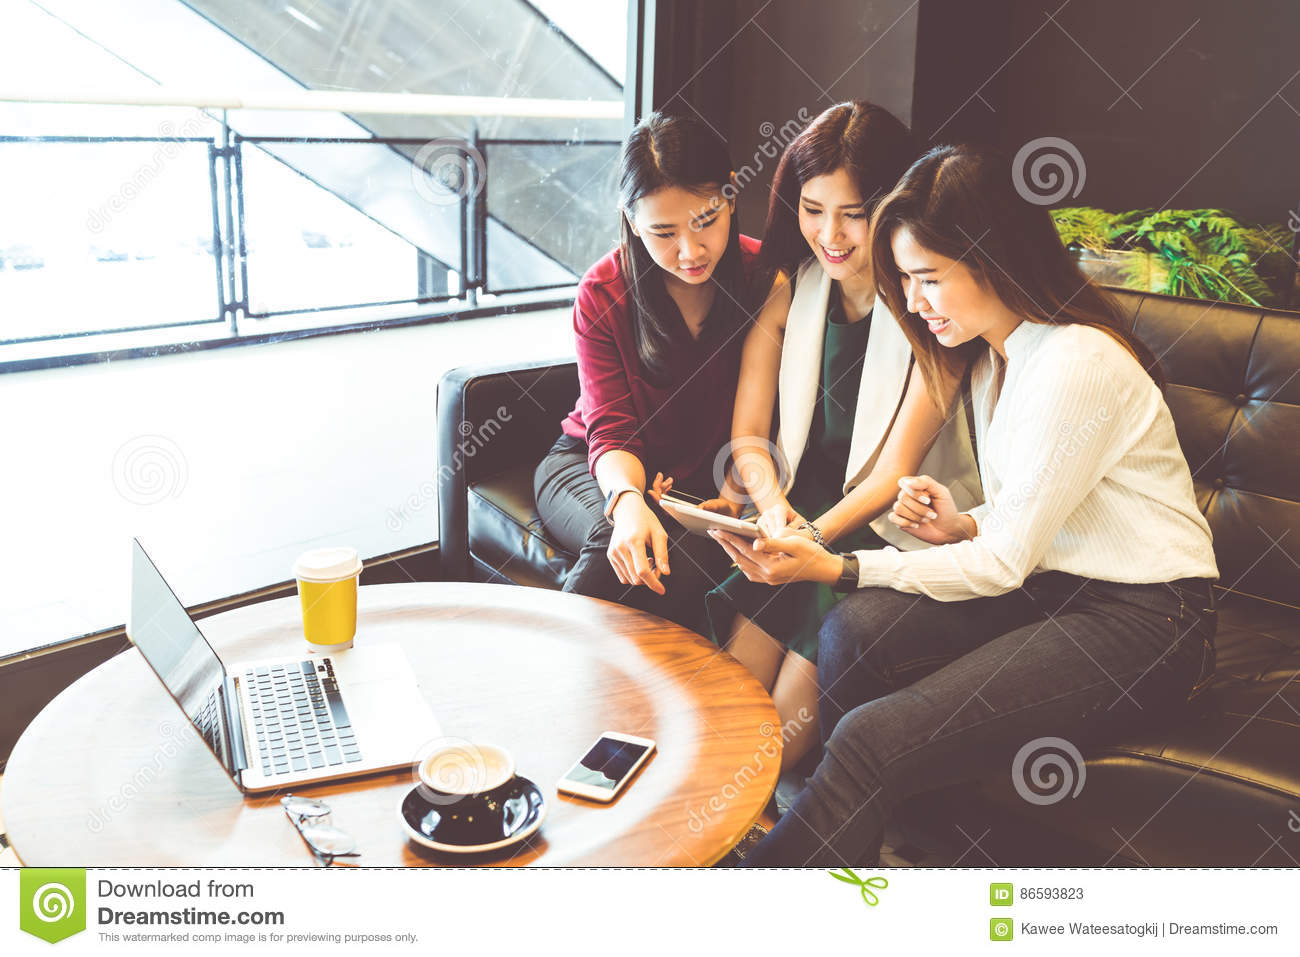 Three beautiful Asian girls using smartphone and laptop, chatting on sofa at cafe